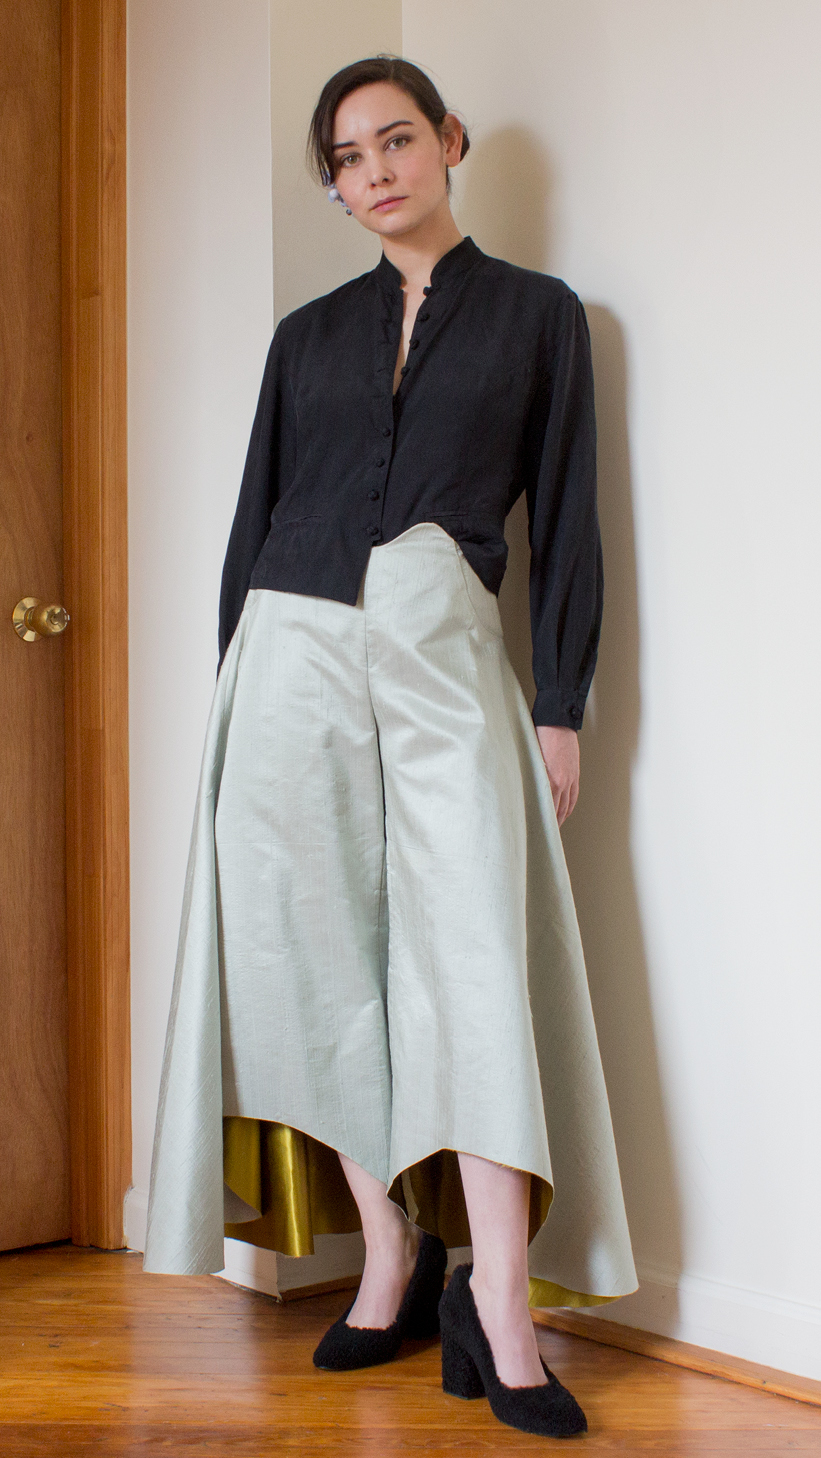 wide leg mint shantung pants with golden silk lining, black blouse with mandarin collar and Chinese button knots #graduatecollection #fashiondesign #fashiondesignstudent #outfit